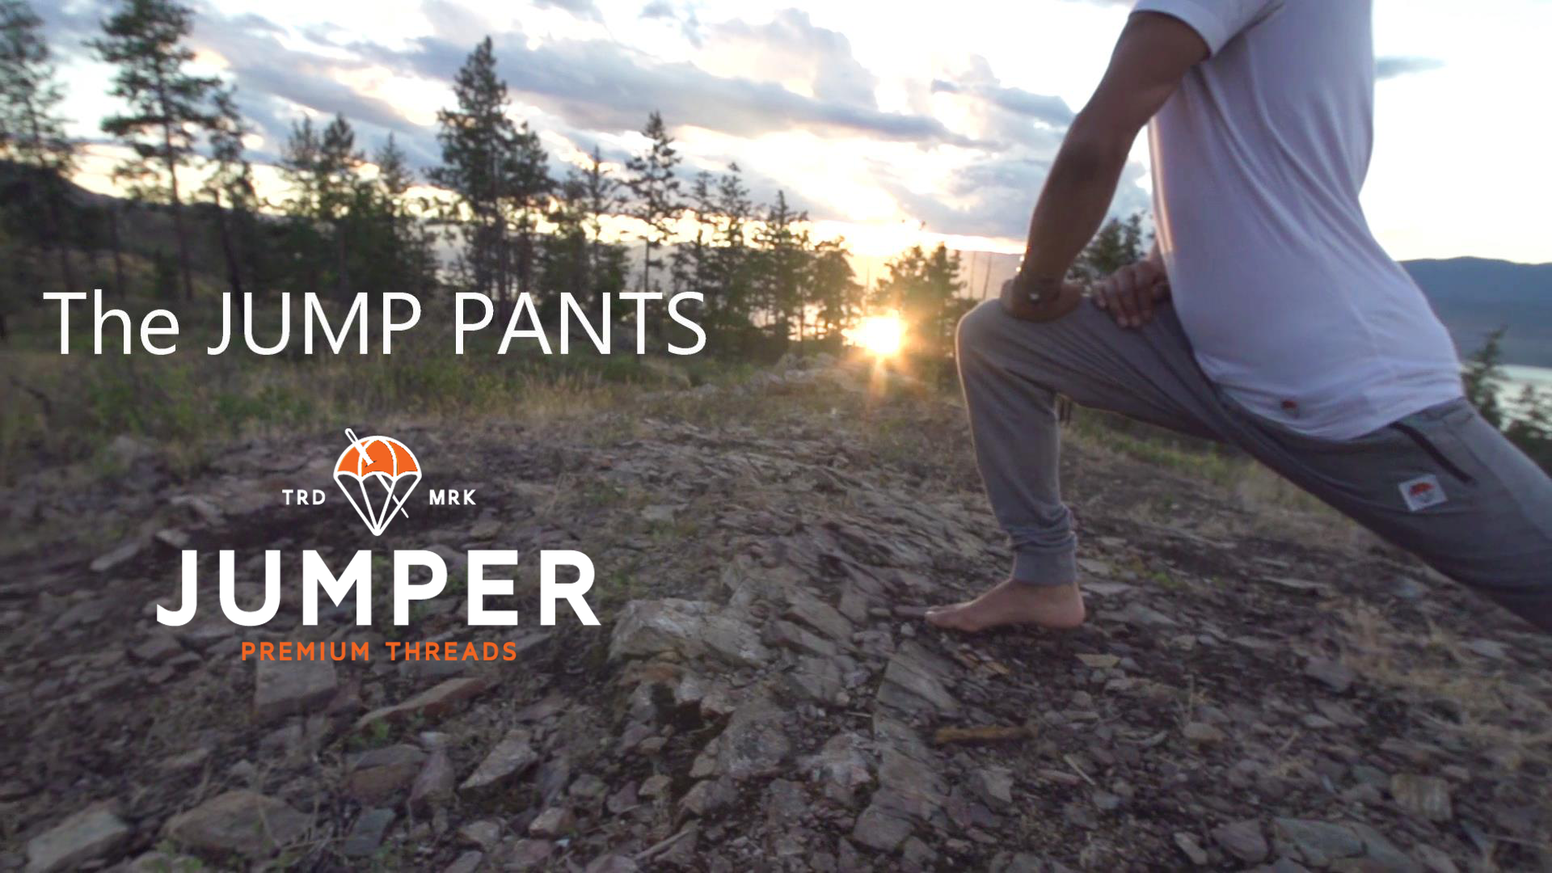 The most ridiculously comfortable and innovated sweatpants on the planet.